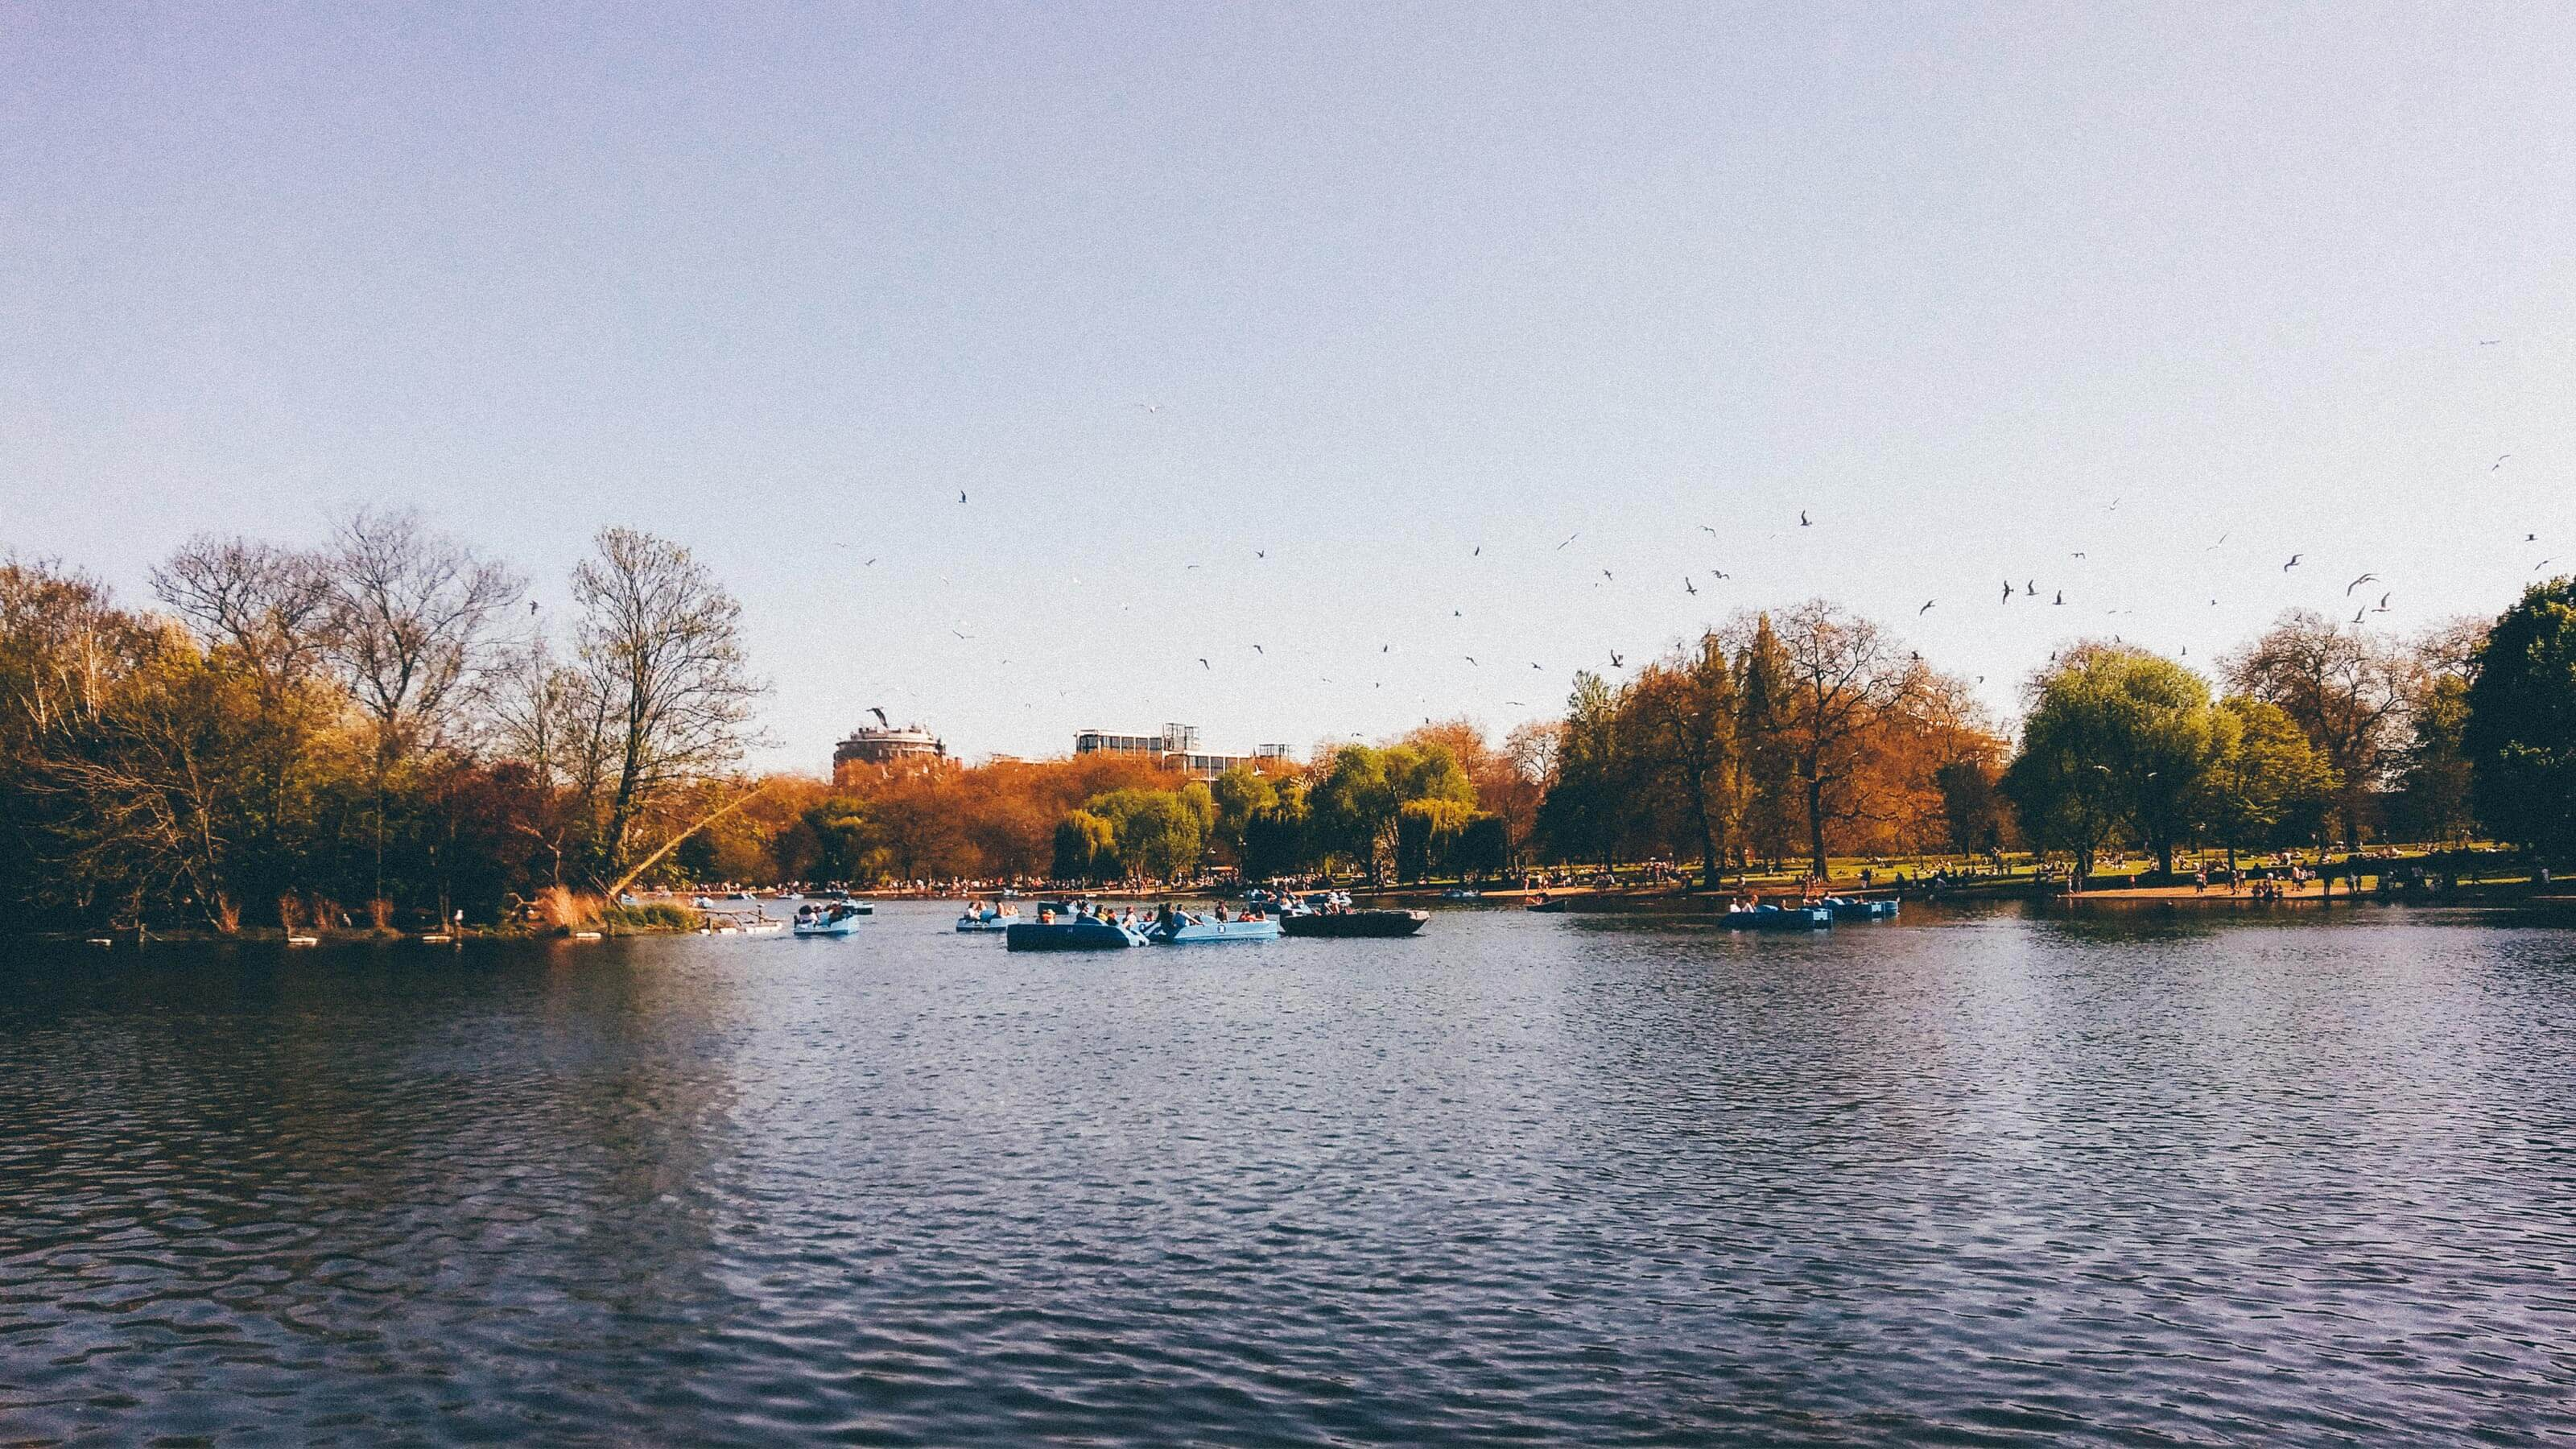 View of the lake at Hyde Park showing the boats and the park either side.